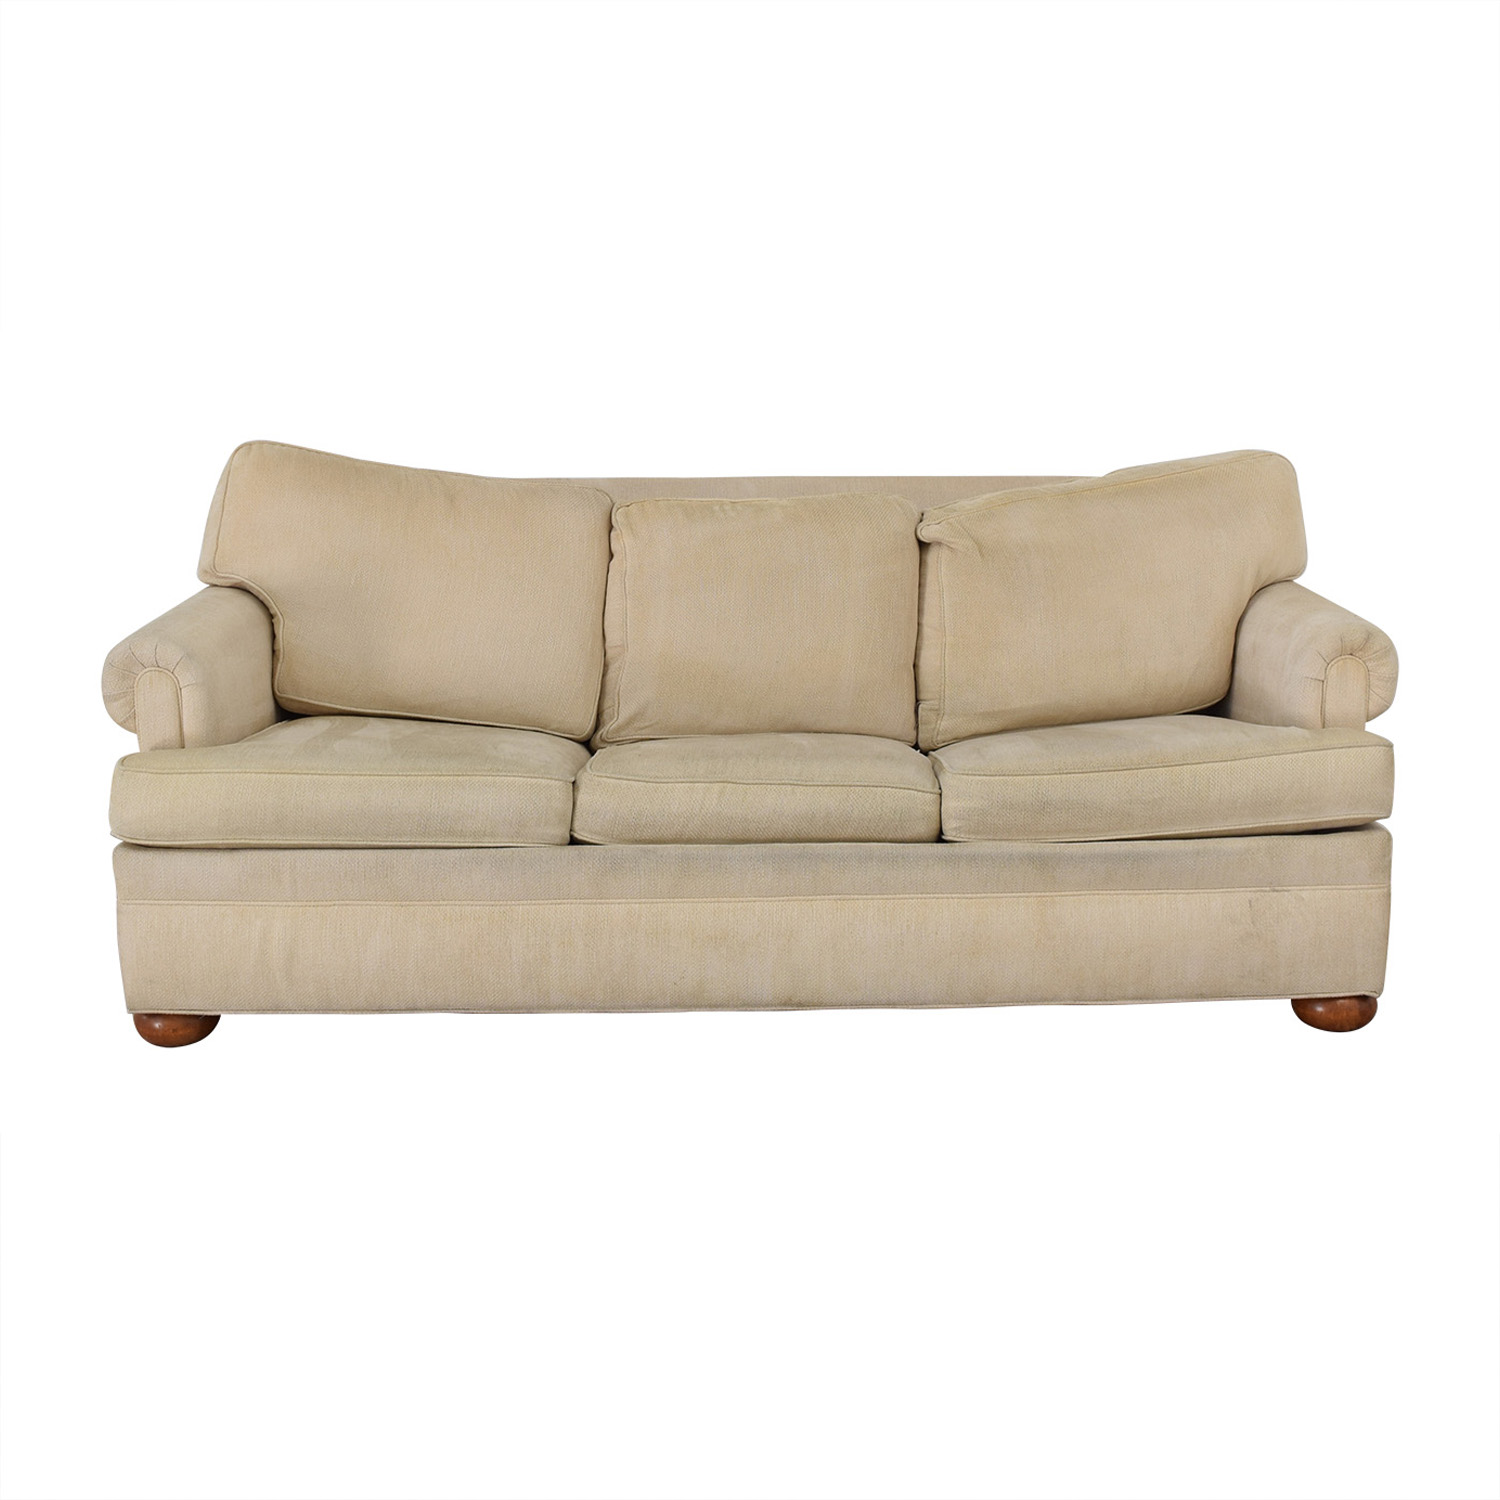 buy Ethan Allen Off White Three-Cushion Queen Convertible Sofa Ethan Allen Classic Sofas